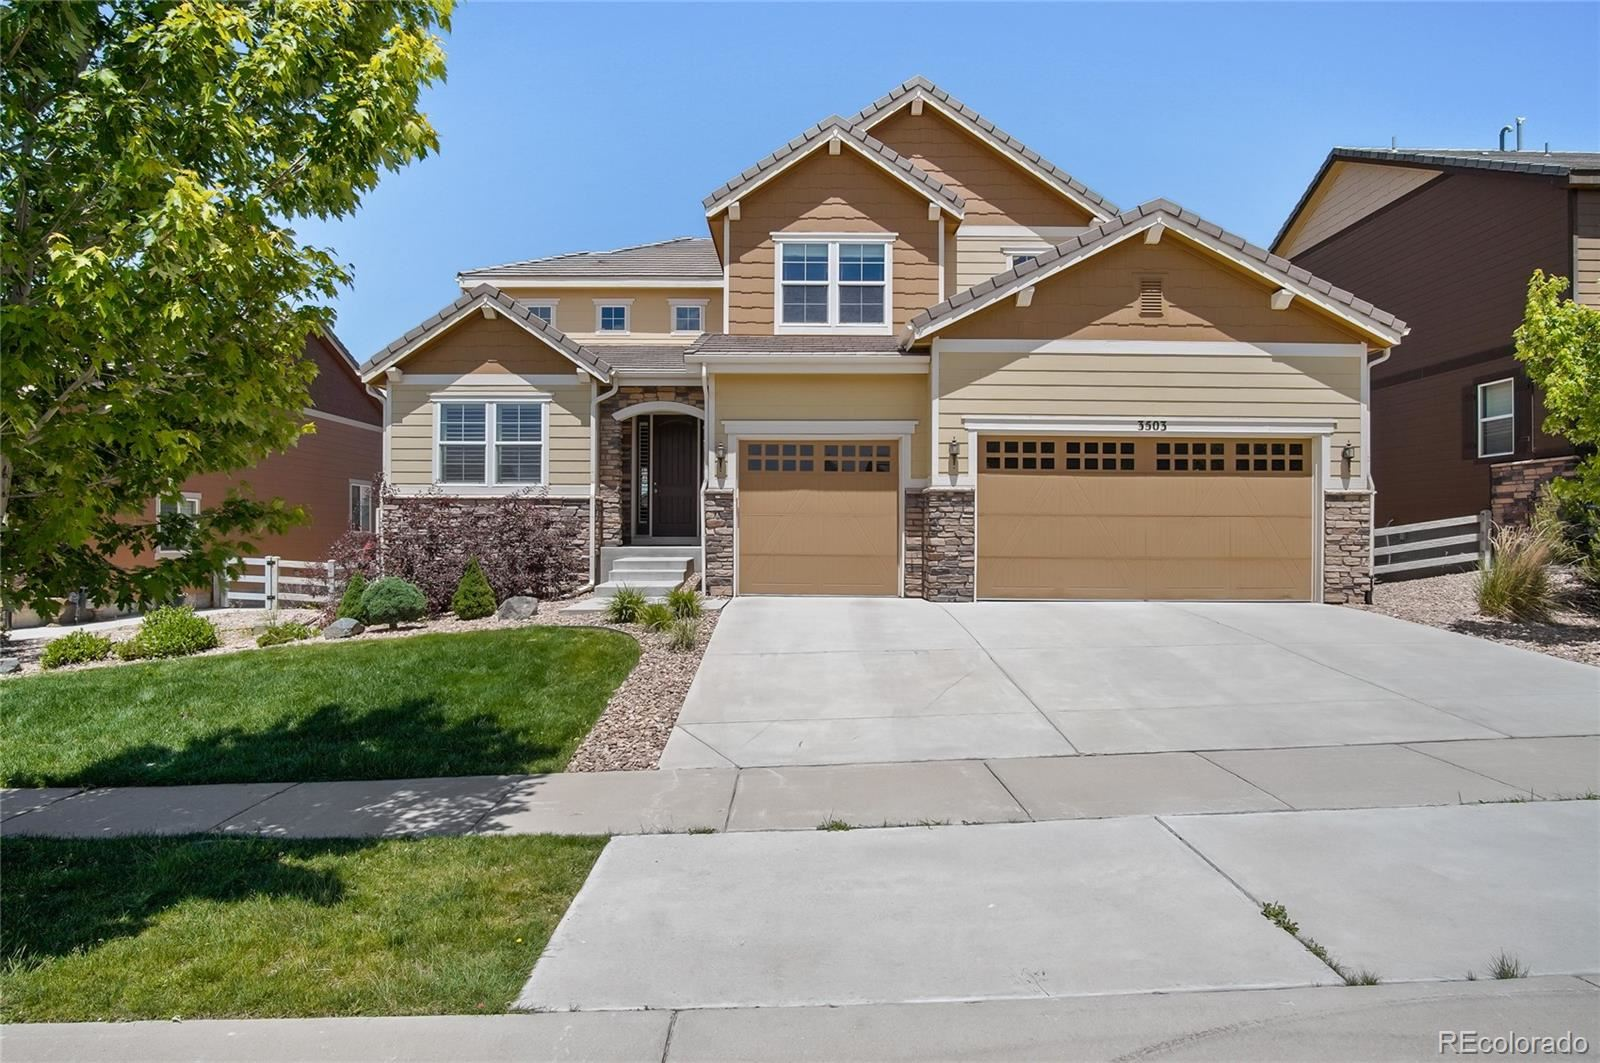 3503 Princeton Place, Broomfield, CO 80023 - #: 5762312